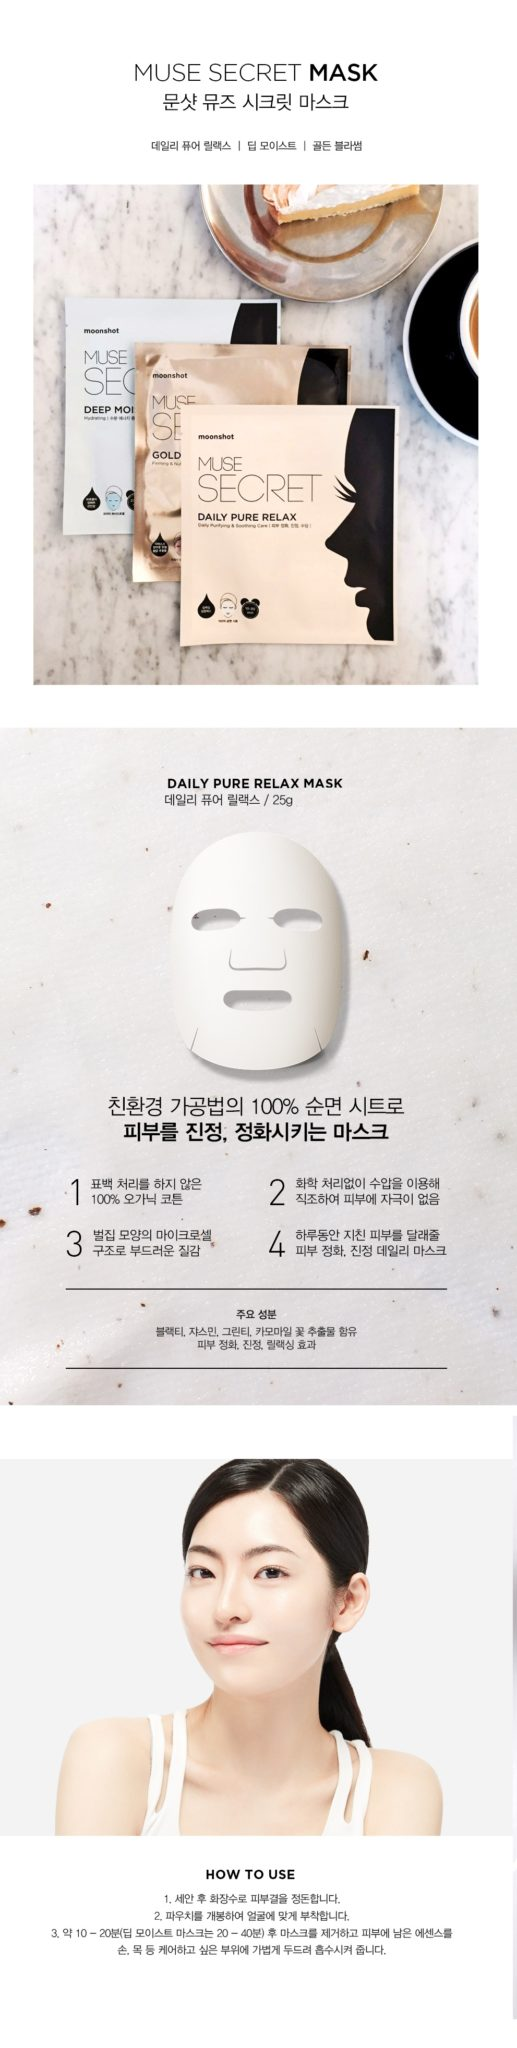 Moonshot Muse Secret Daily Pure Relax Mask Sheet 4 korean cosmetic skincare product online shop malaysia usa macau1